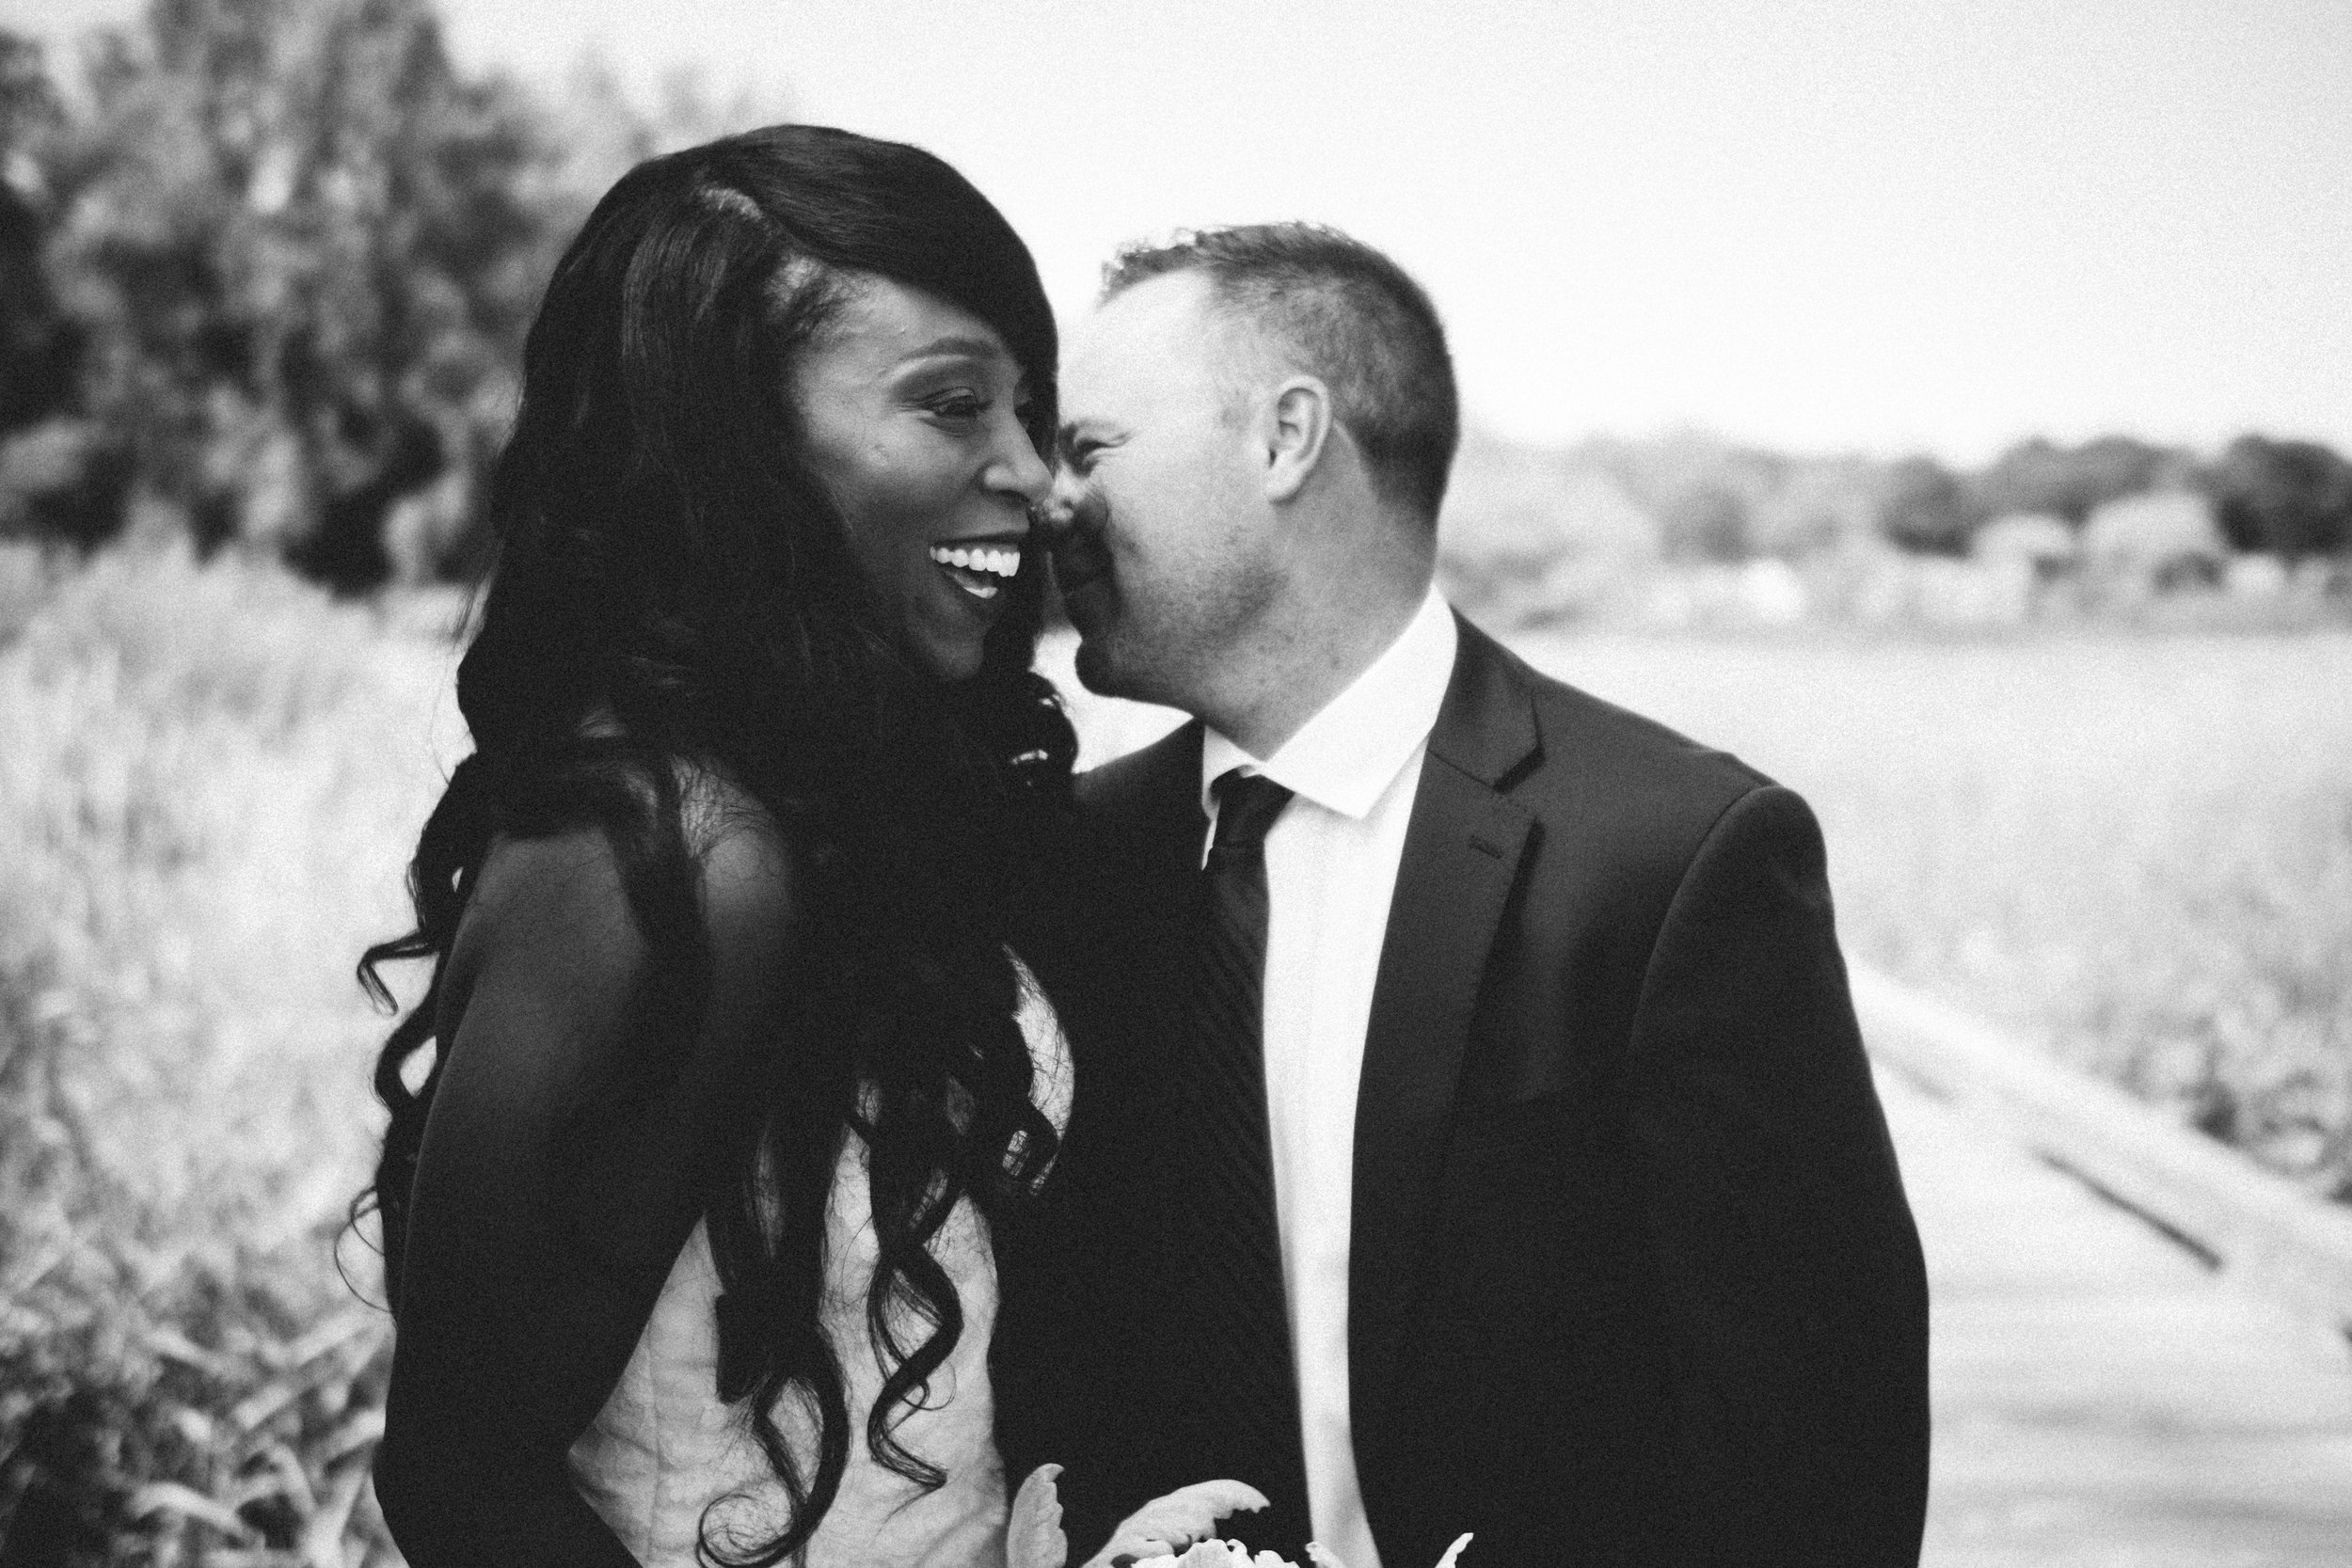 JAHAAN-SCOTT-WARREN-BENTON-HARBOR-WEDDING-PHOTOGRAPGHY_0012.jpg